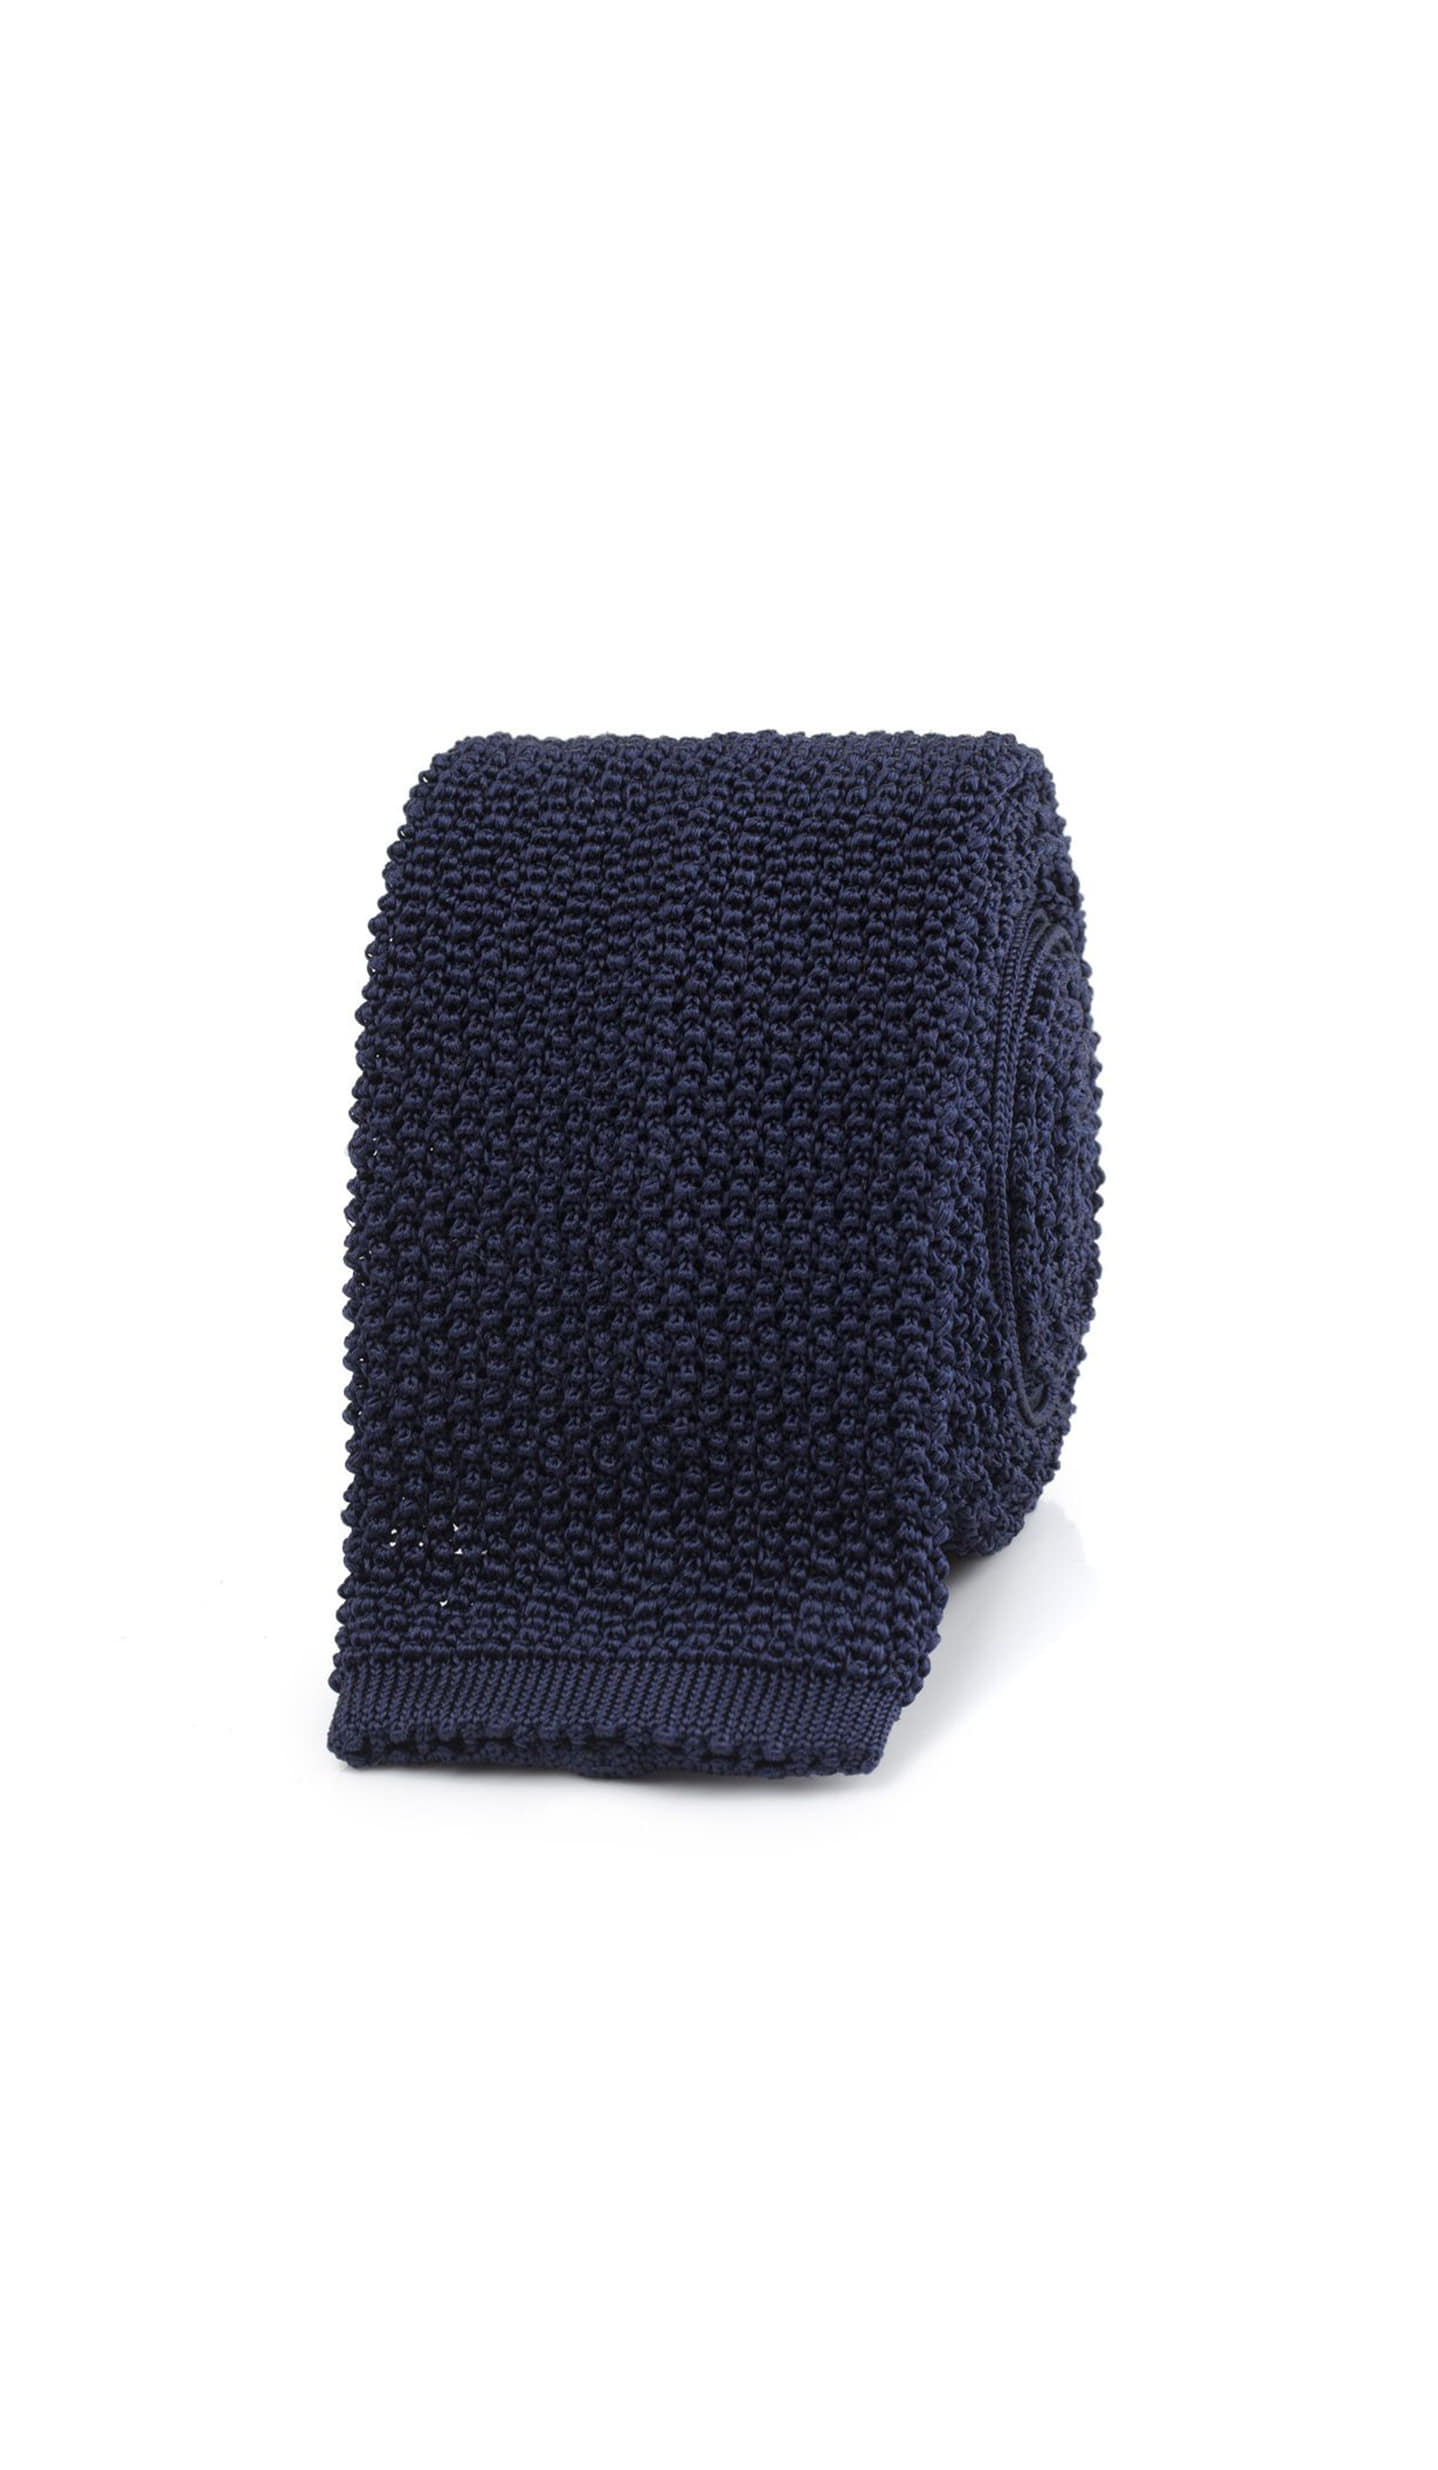 TAILORABLE x DRAKES Navy knitted silk solid colour tie